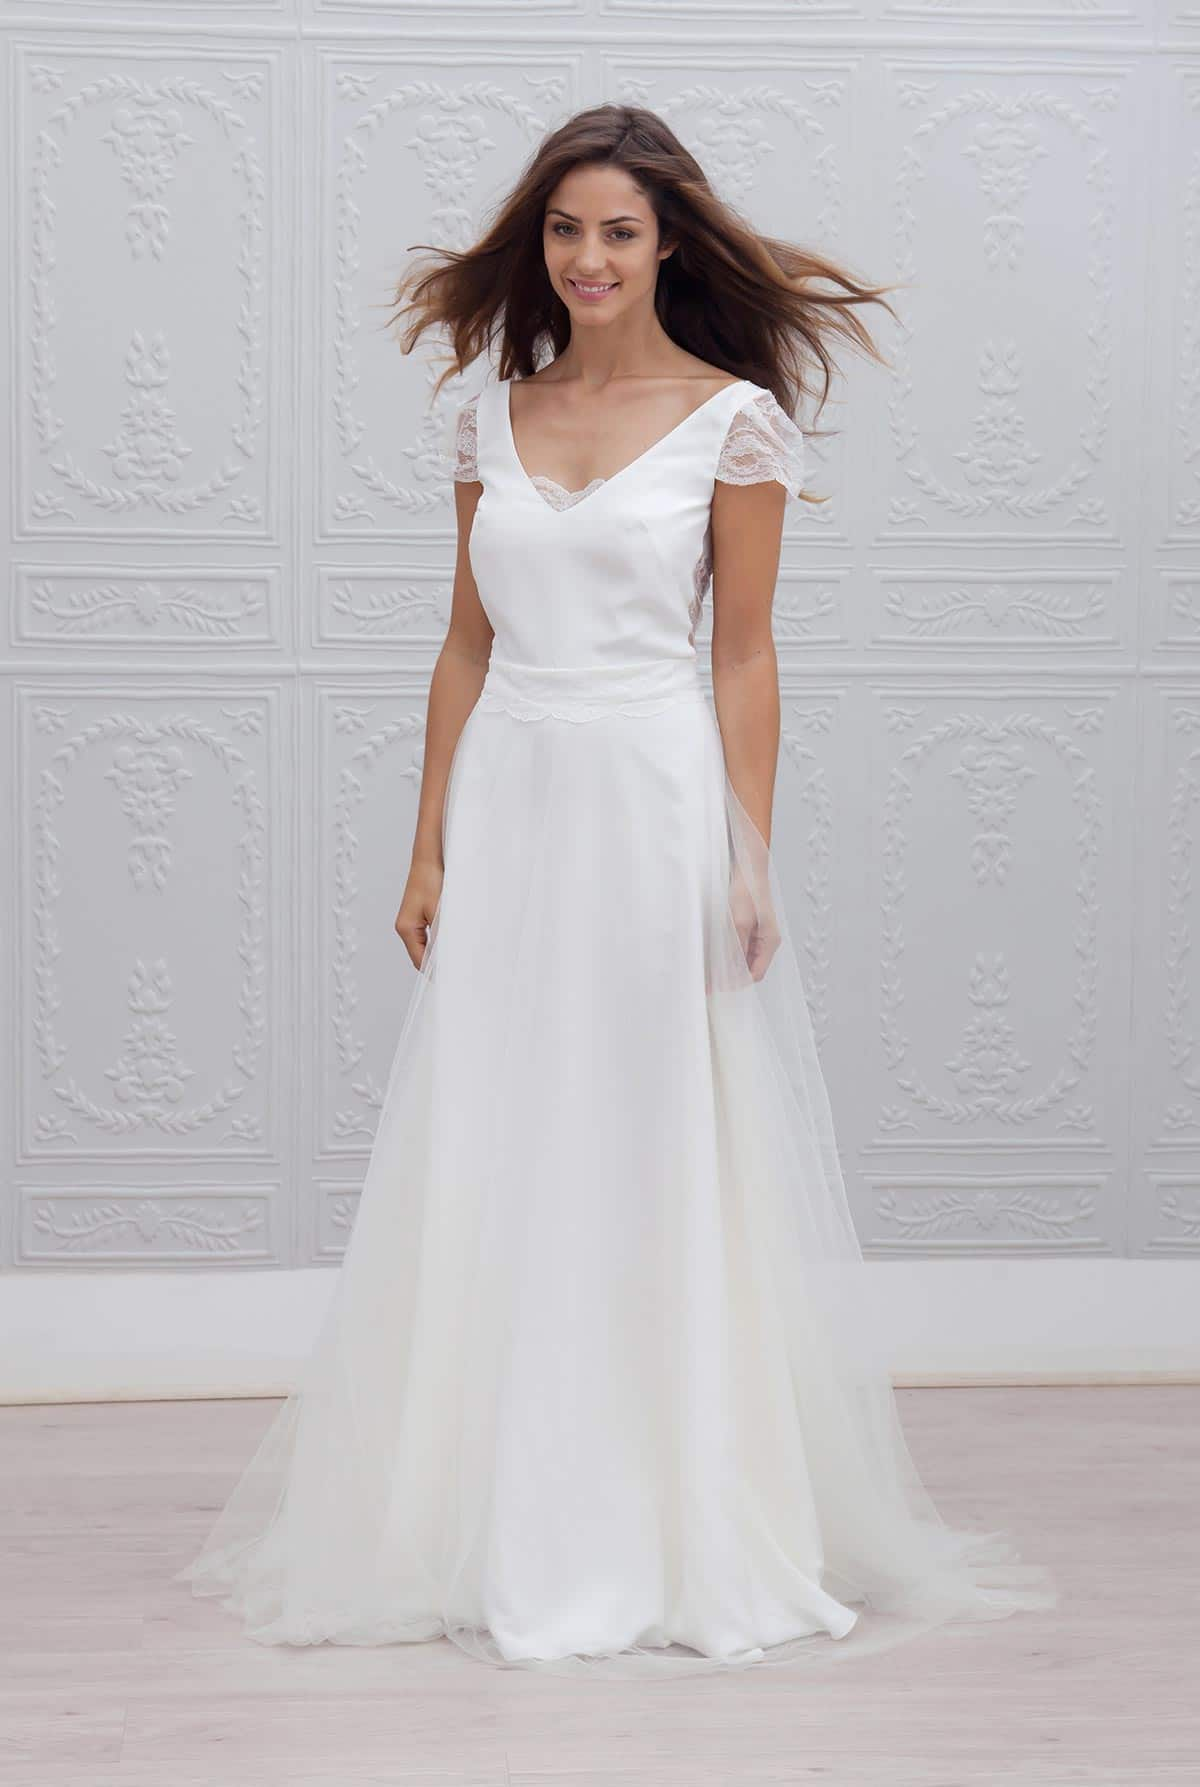 Marie Laporte collection 2015 Marie Laporte Collection 2015 9 - Blog Mariage